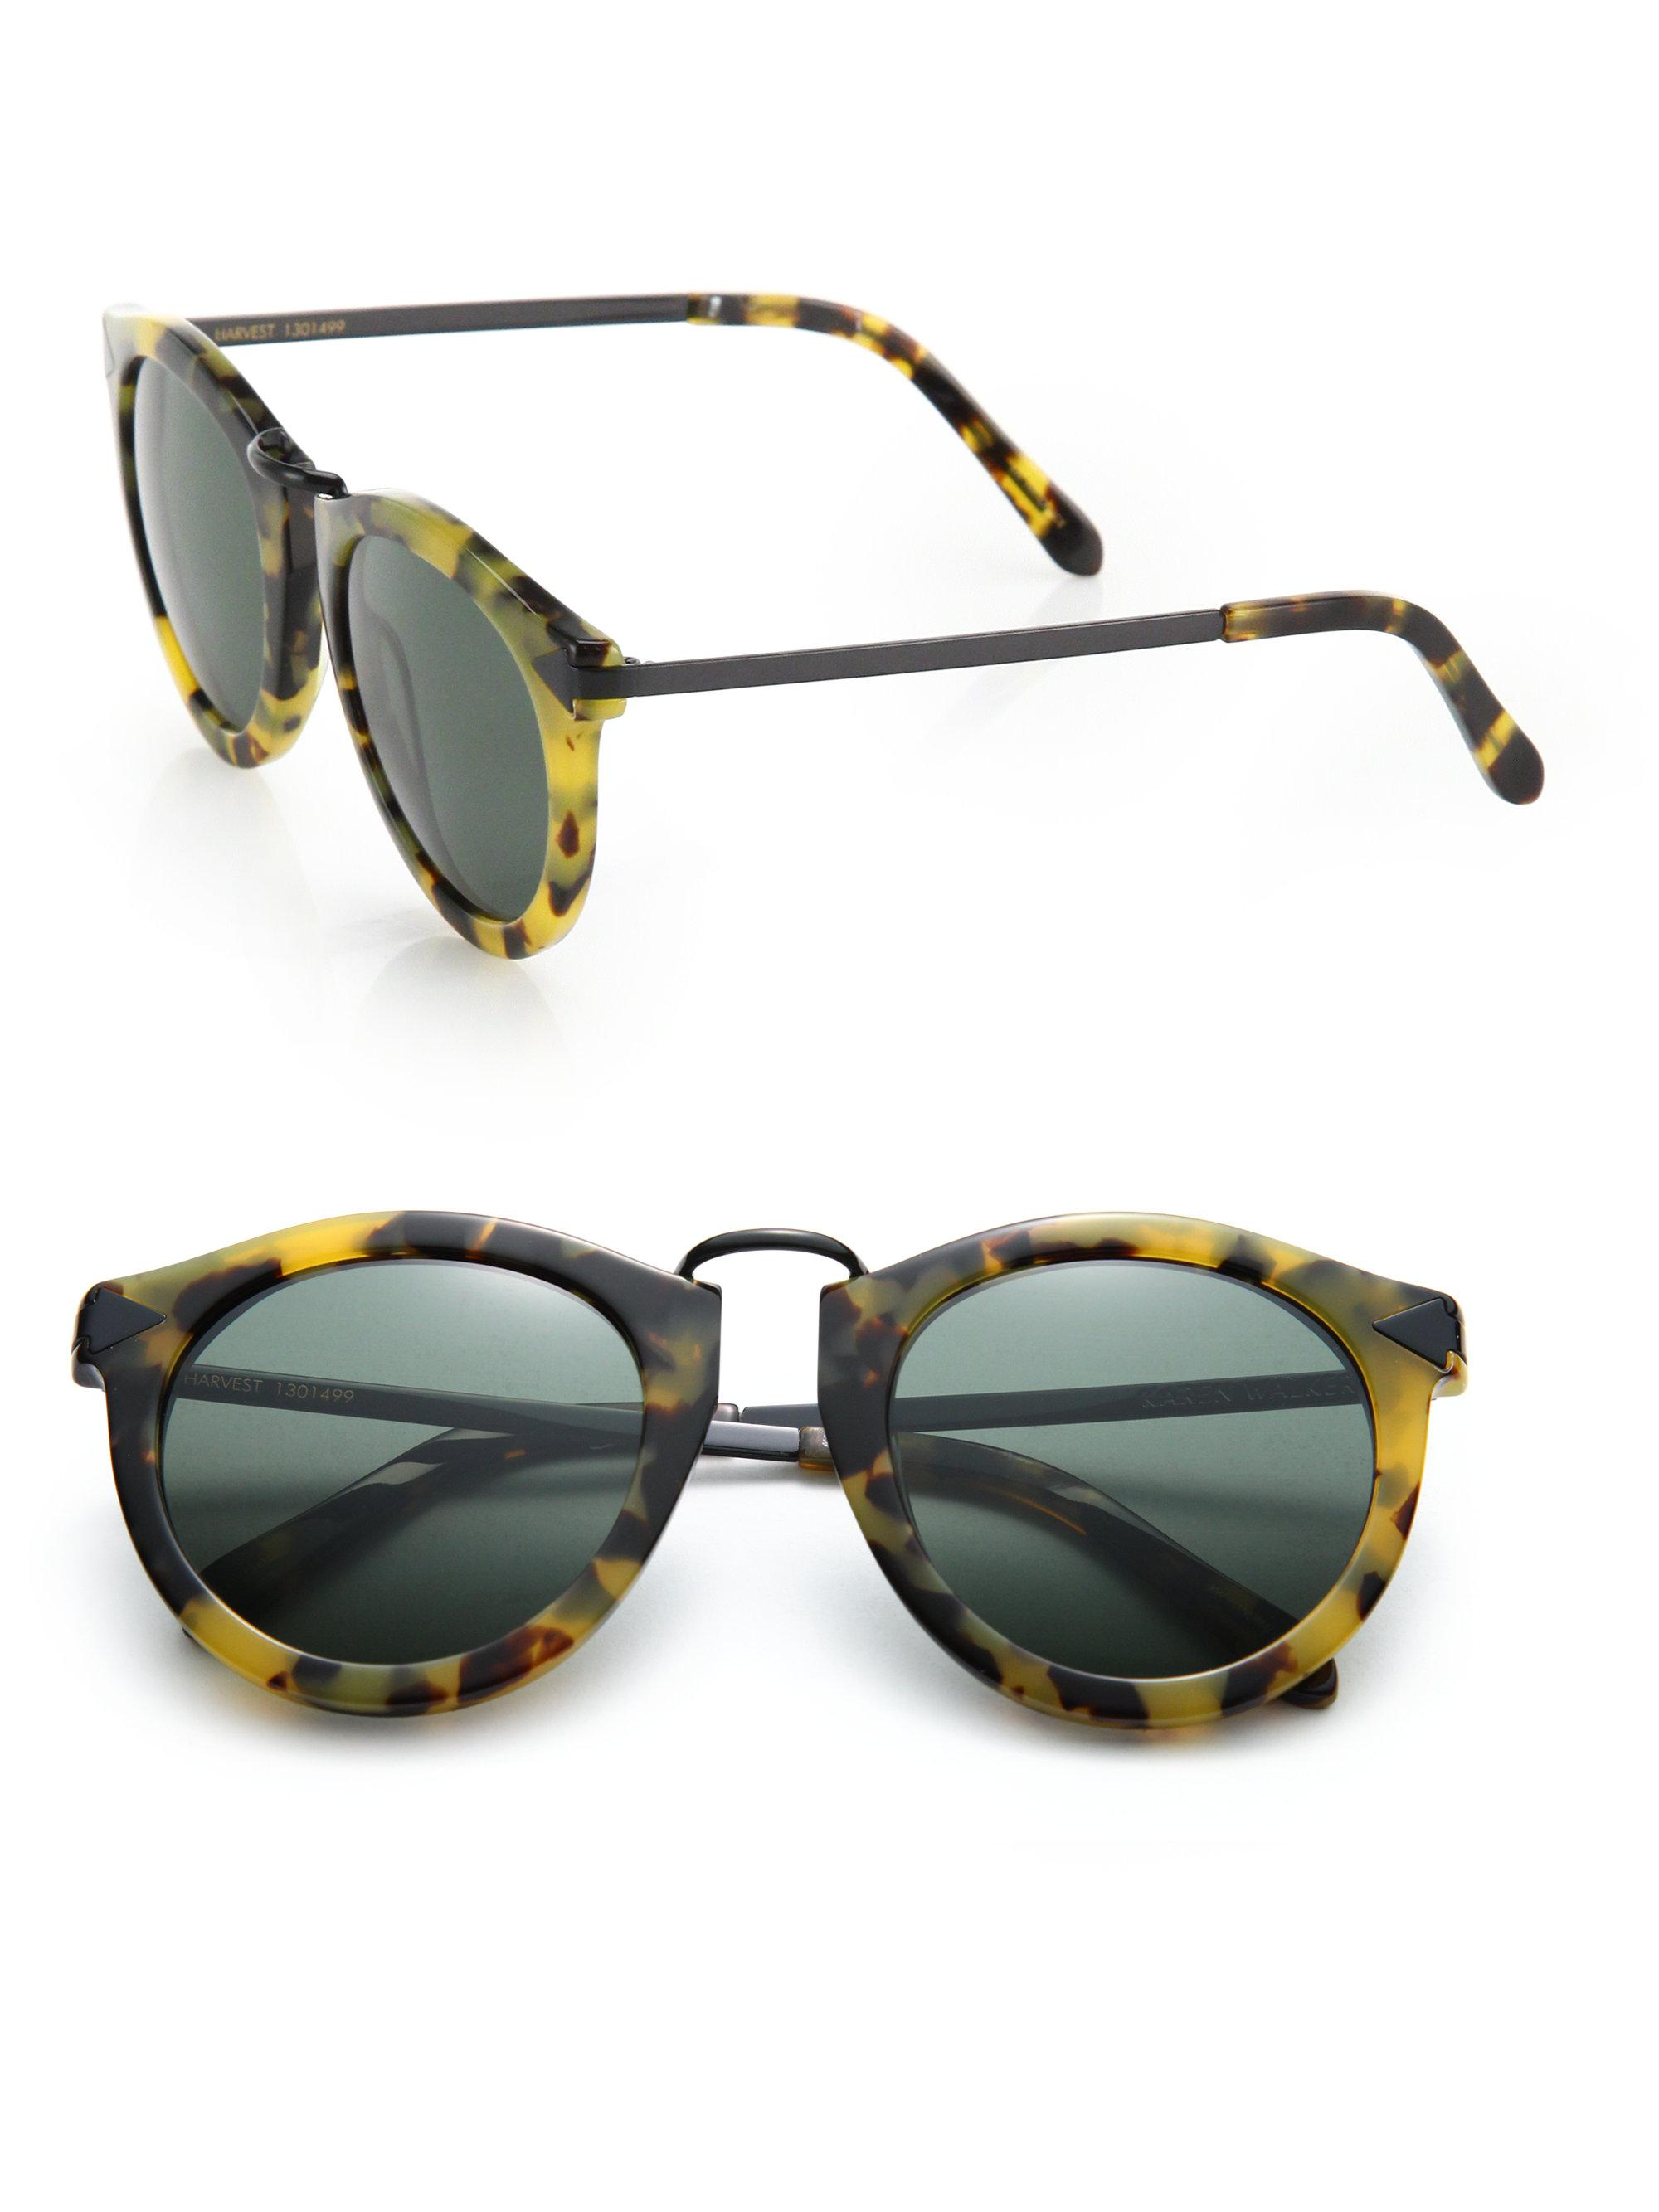 4061b69271a2 Karen Walker Harvest 51mm Round Sunglasses in Yellow - Lyst